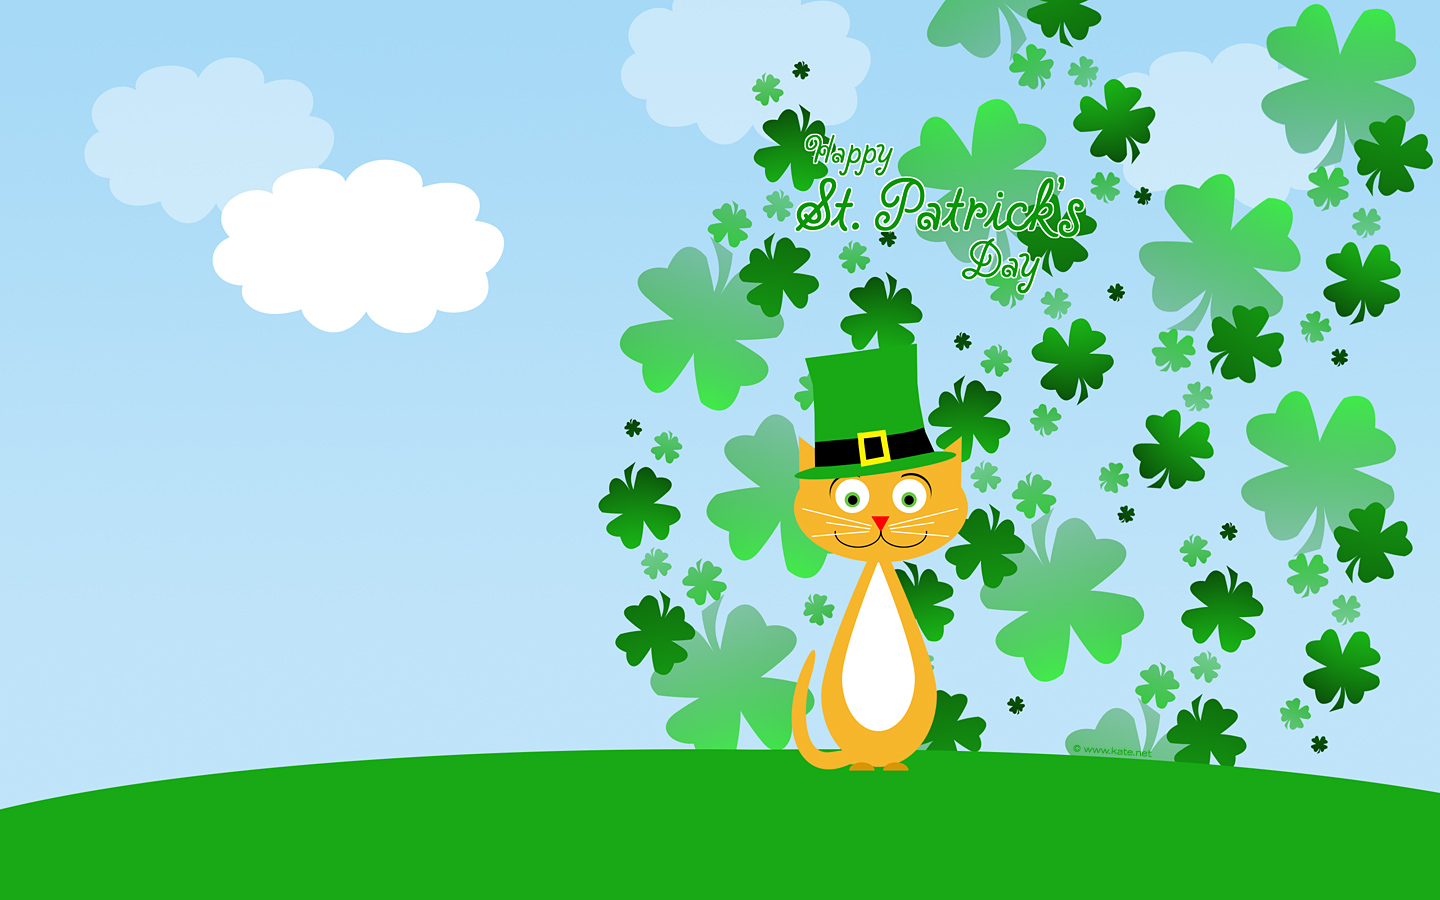 49] St Patricks Day Wallpaper Backgrounds on WallpaperSafari 1440x900